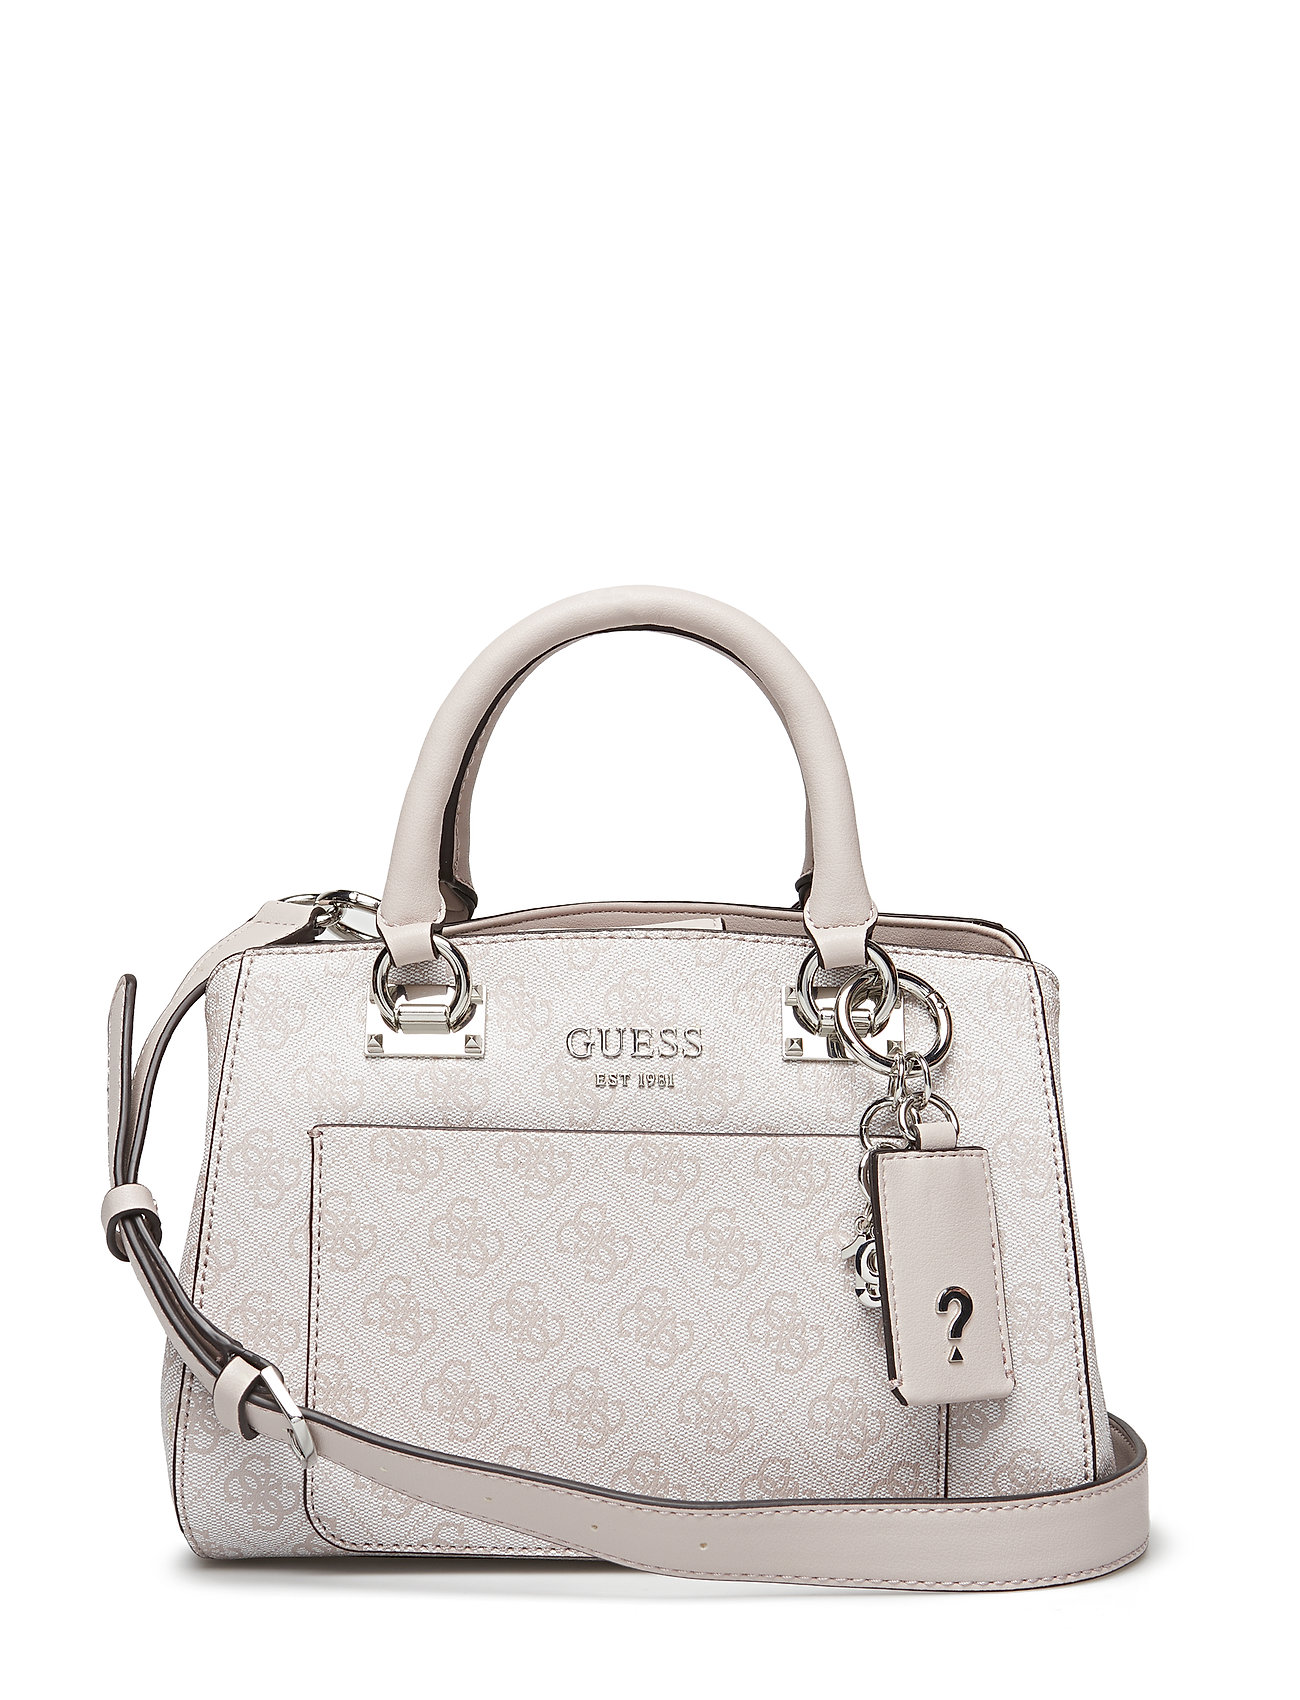 c48a72ed3edbc GUESS Kathryn Sml Girlfriend Satchel Bags Top Handle Bags Beige GUESS